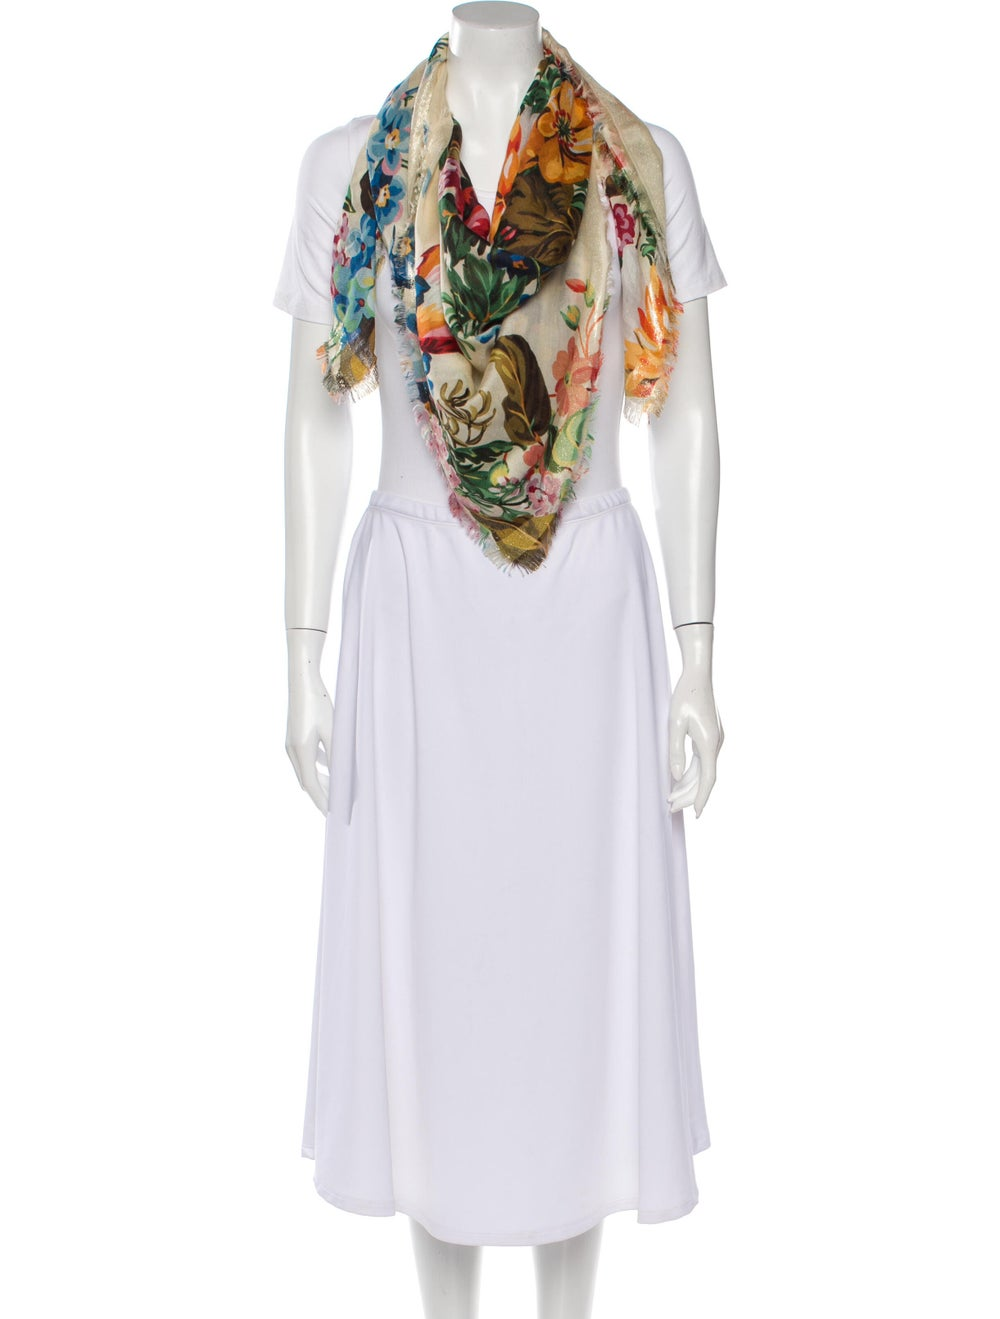 Gucci Wool Floral Scarf w/ Tags multicolor - image 3